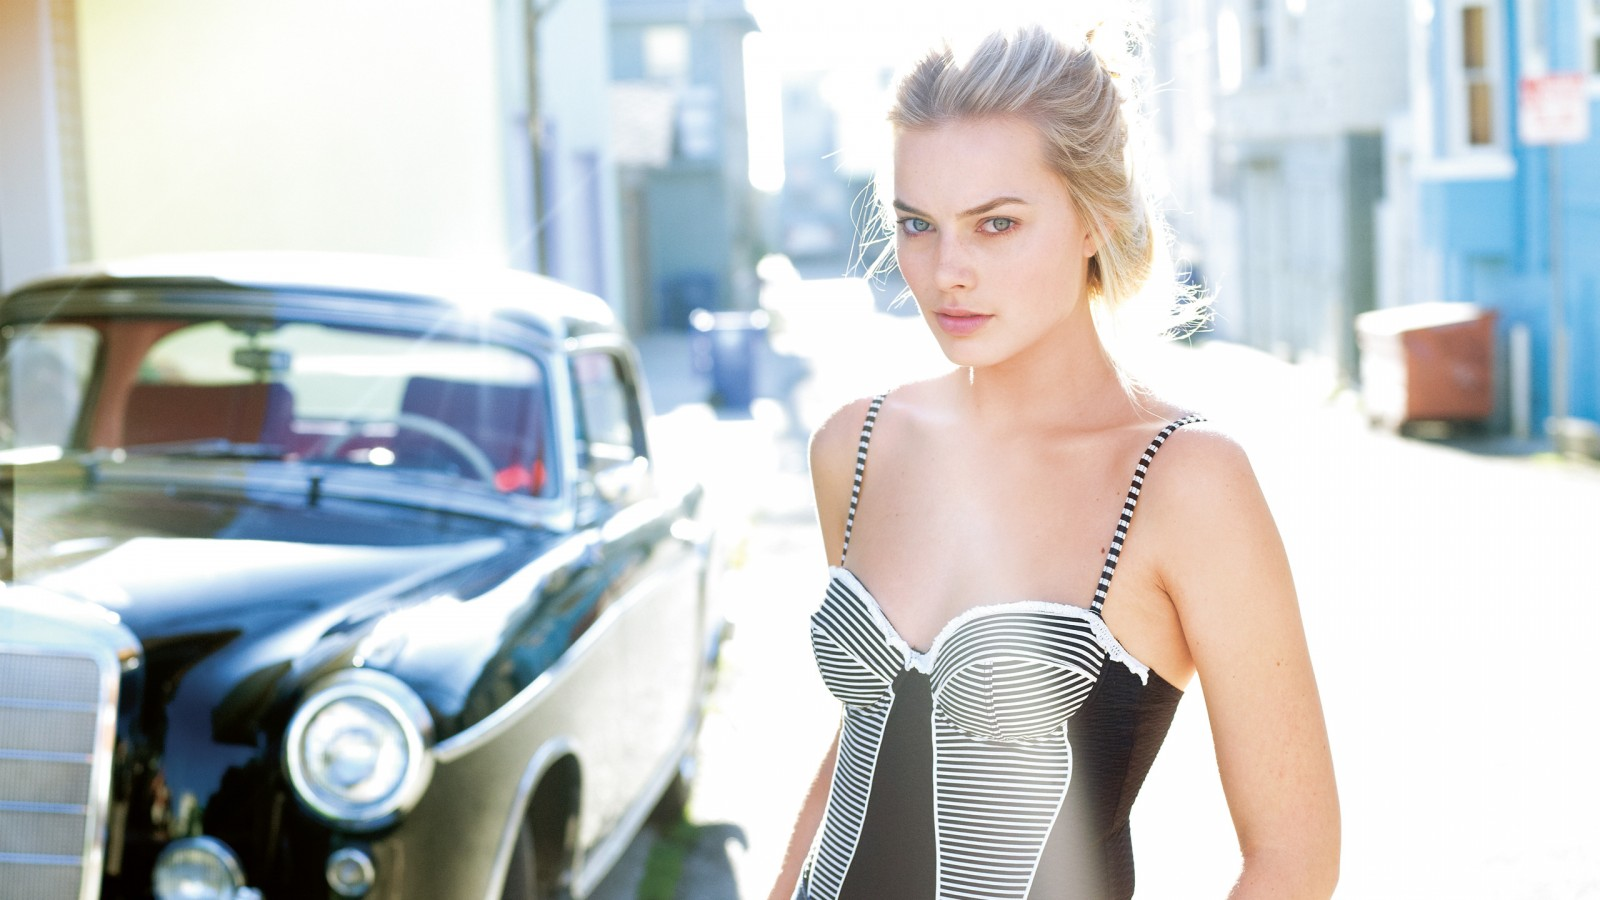 Iphone 5 Wallpaper For Girls Margot Robbie 2016 Wallpapers Hd Wallpapers Id 17505